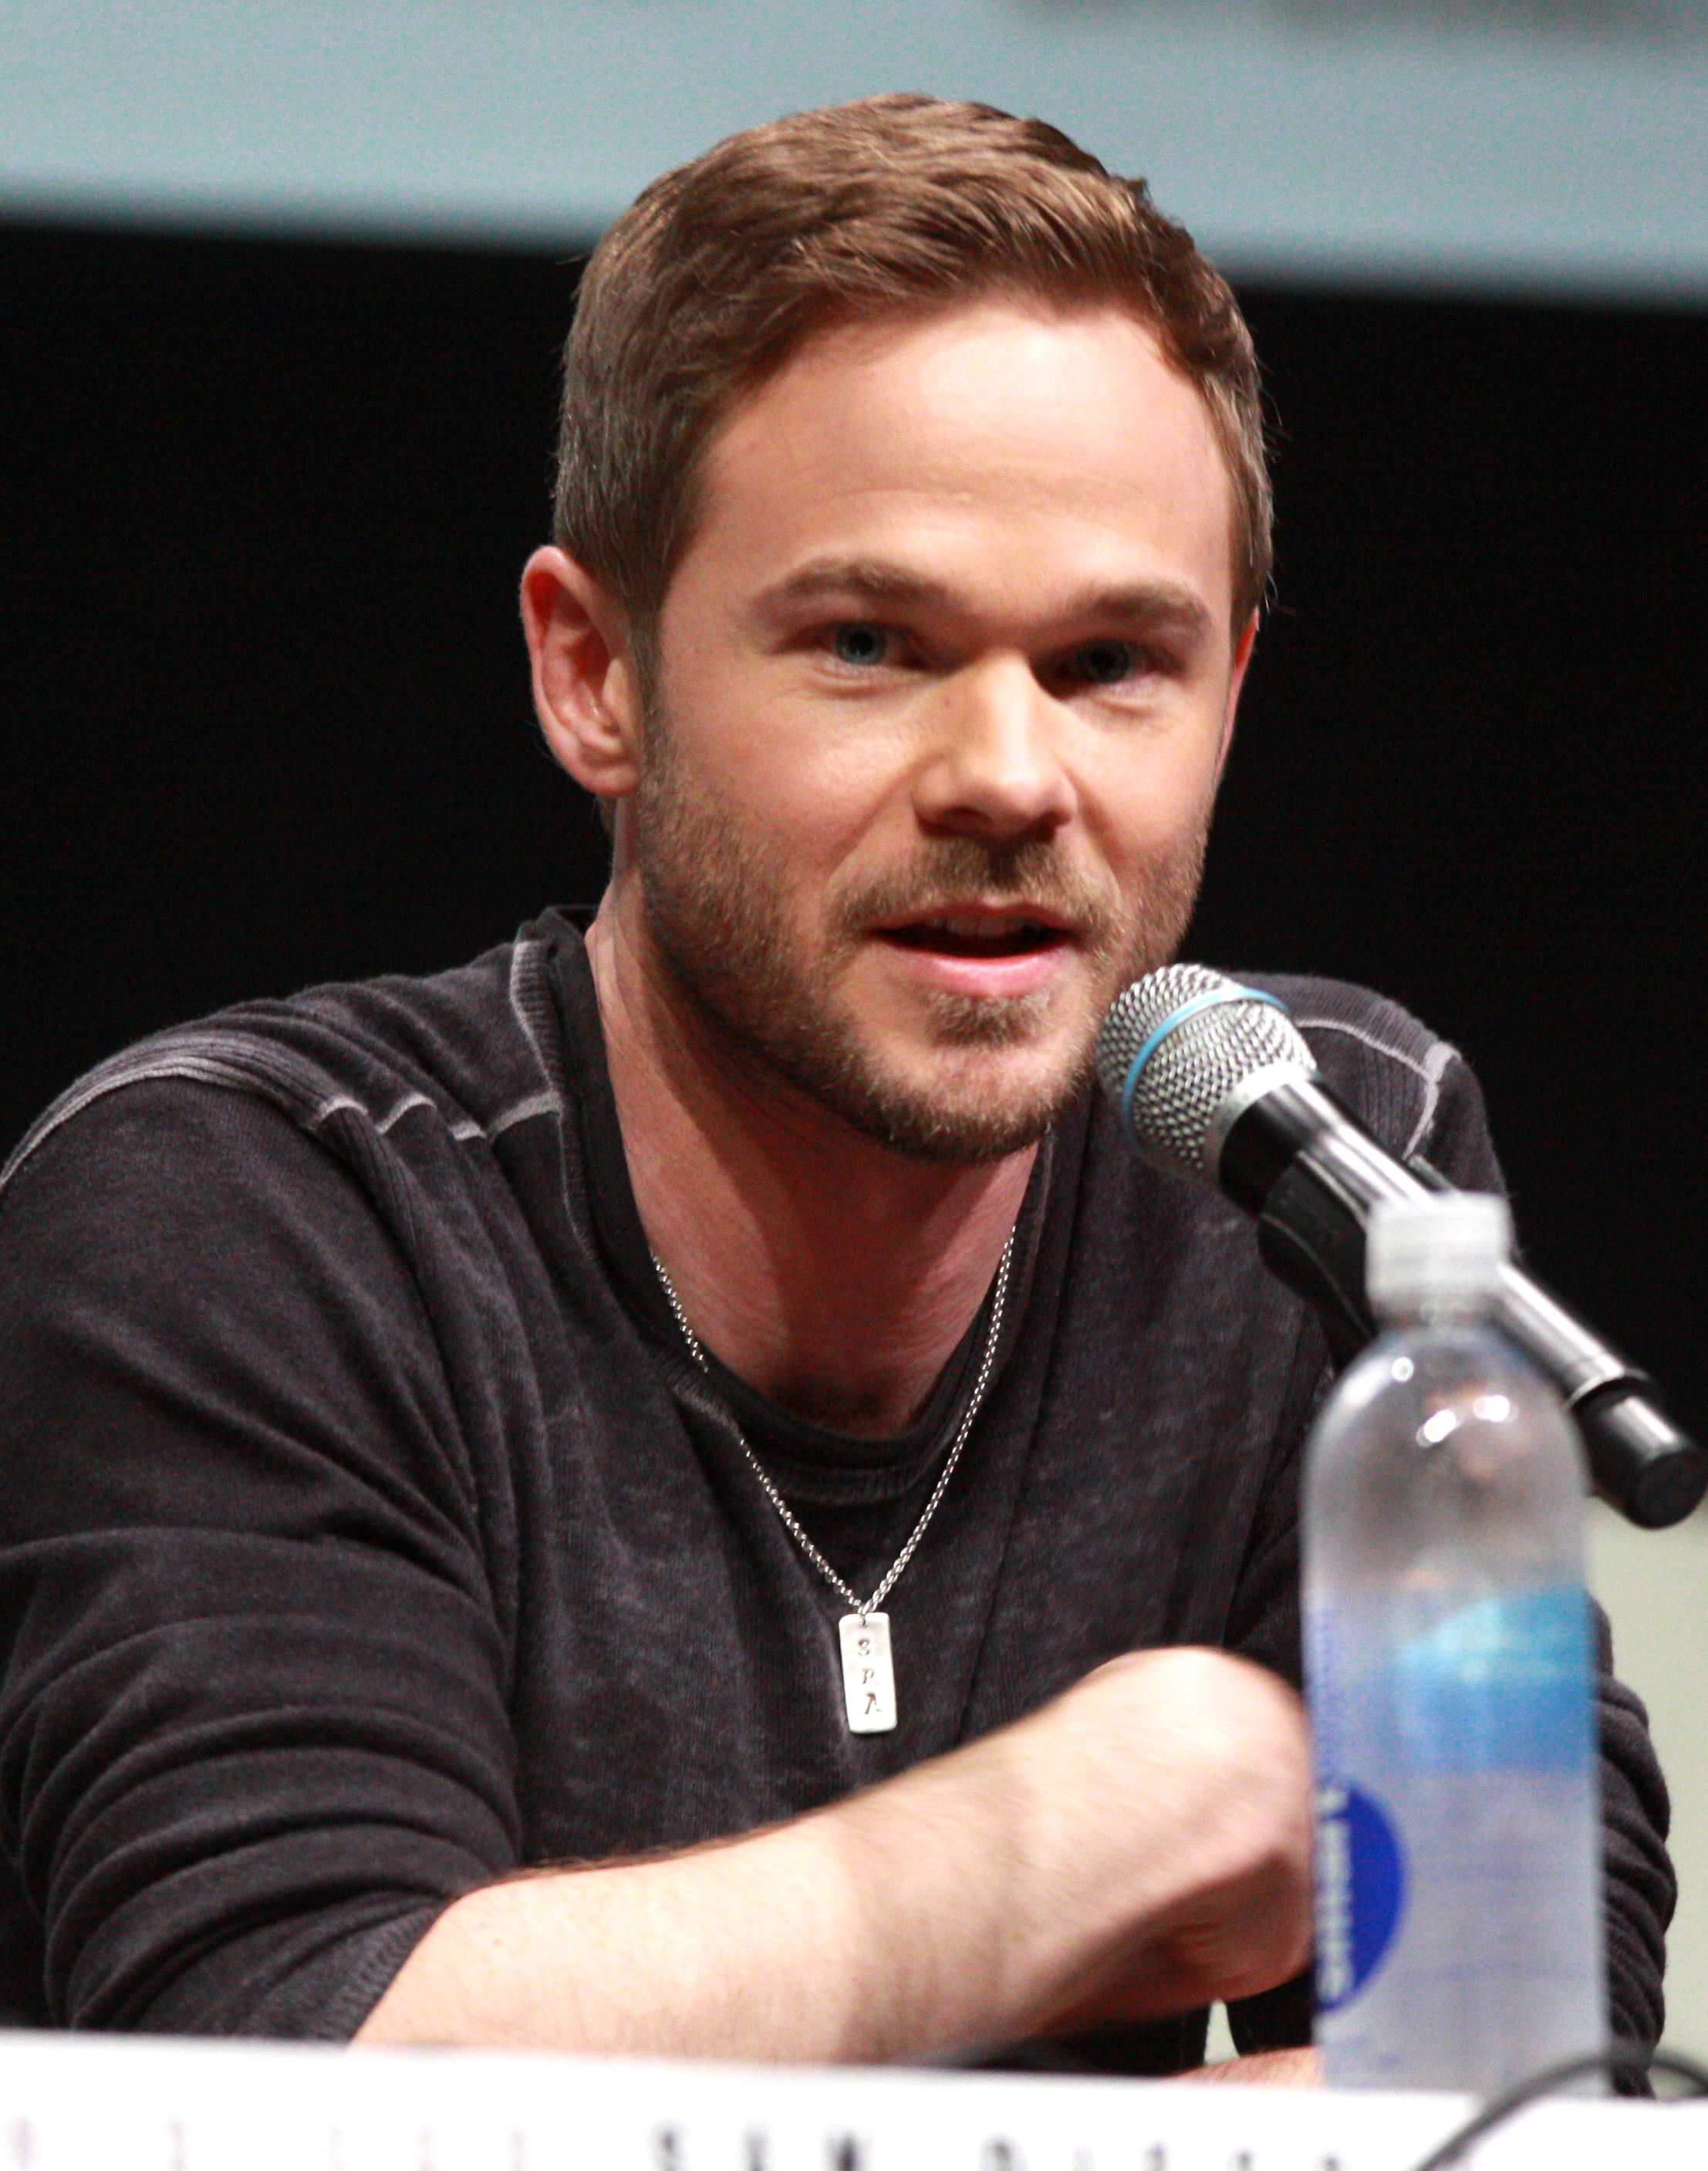 shawn ashmore the followingshawn ashmore height weight, shawn ashmore brother, shawn ashmore and wife, shawn ashmore movies and tv shows, shawn ashmore twitter, shawn ashmore gif hunt, shawn ashmore film, shawn ashmore quantum break interview, shawn ashmore instagram, shawn ashmore aaron ashmore, shawn ashmore tumblr, shawn ashmore, shawn ashmore twin, shawn ashmore imdb, shawn ashmore net worth, shawn ashmore smallville, shawn ashmore movies, shawn ashmore height, shawn ashmore the following, shawn ashmore wiki